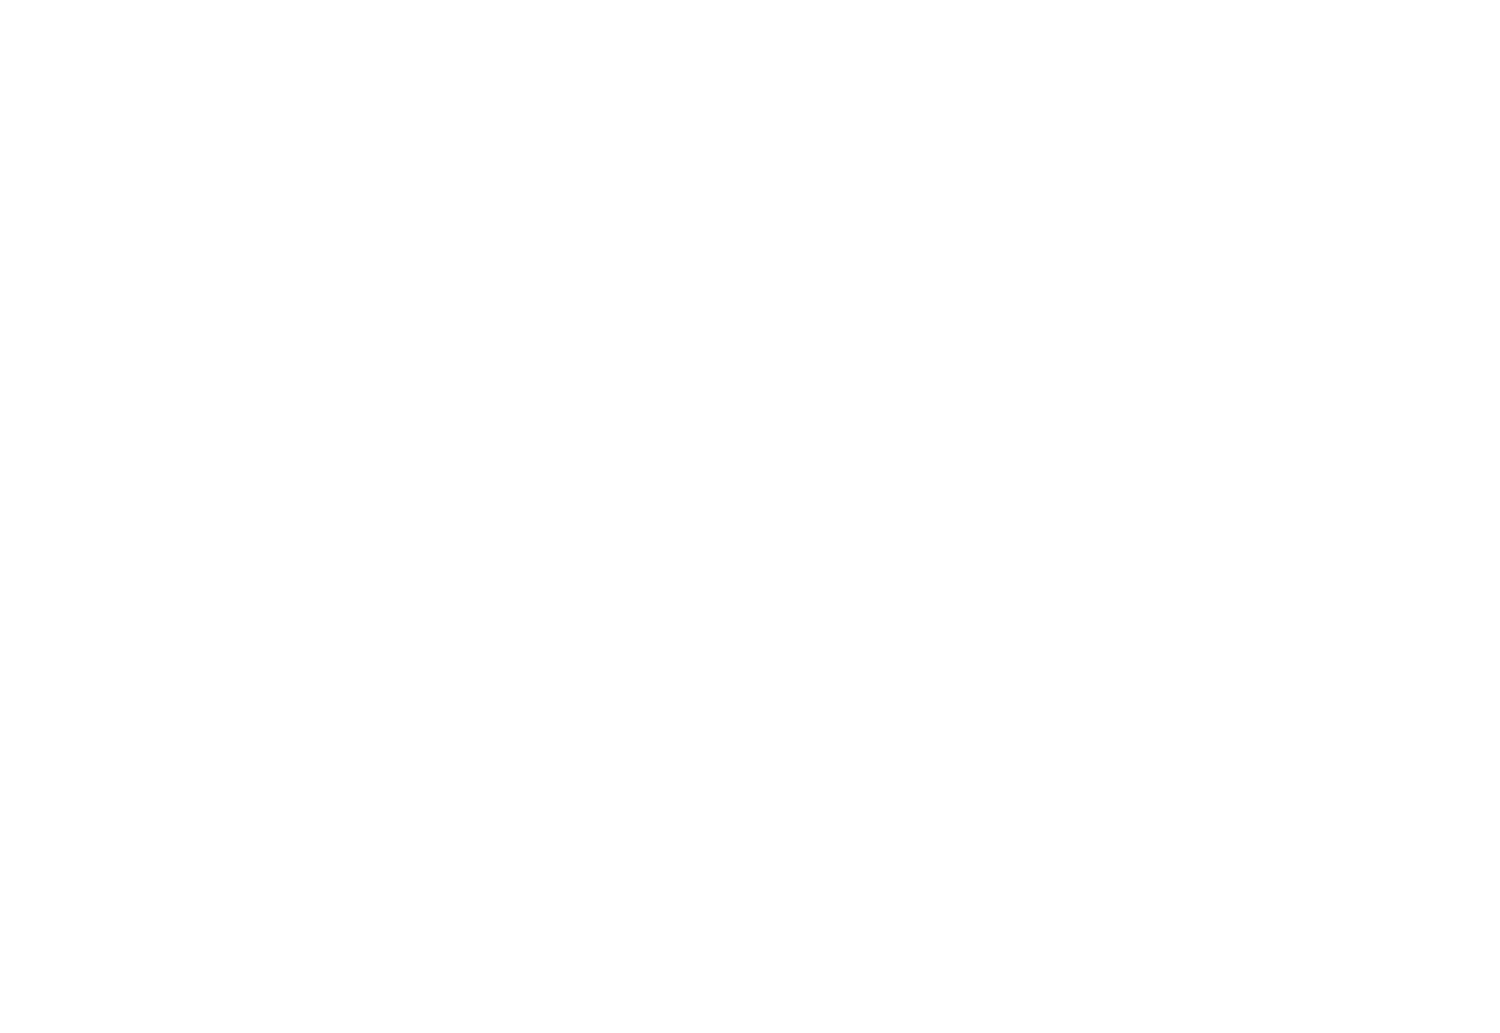 Smiles For All Charity